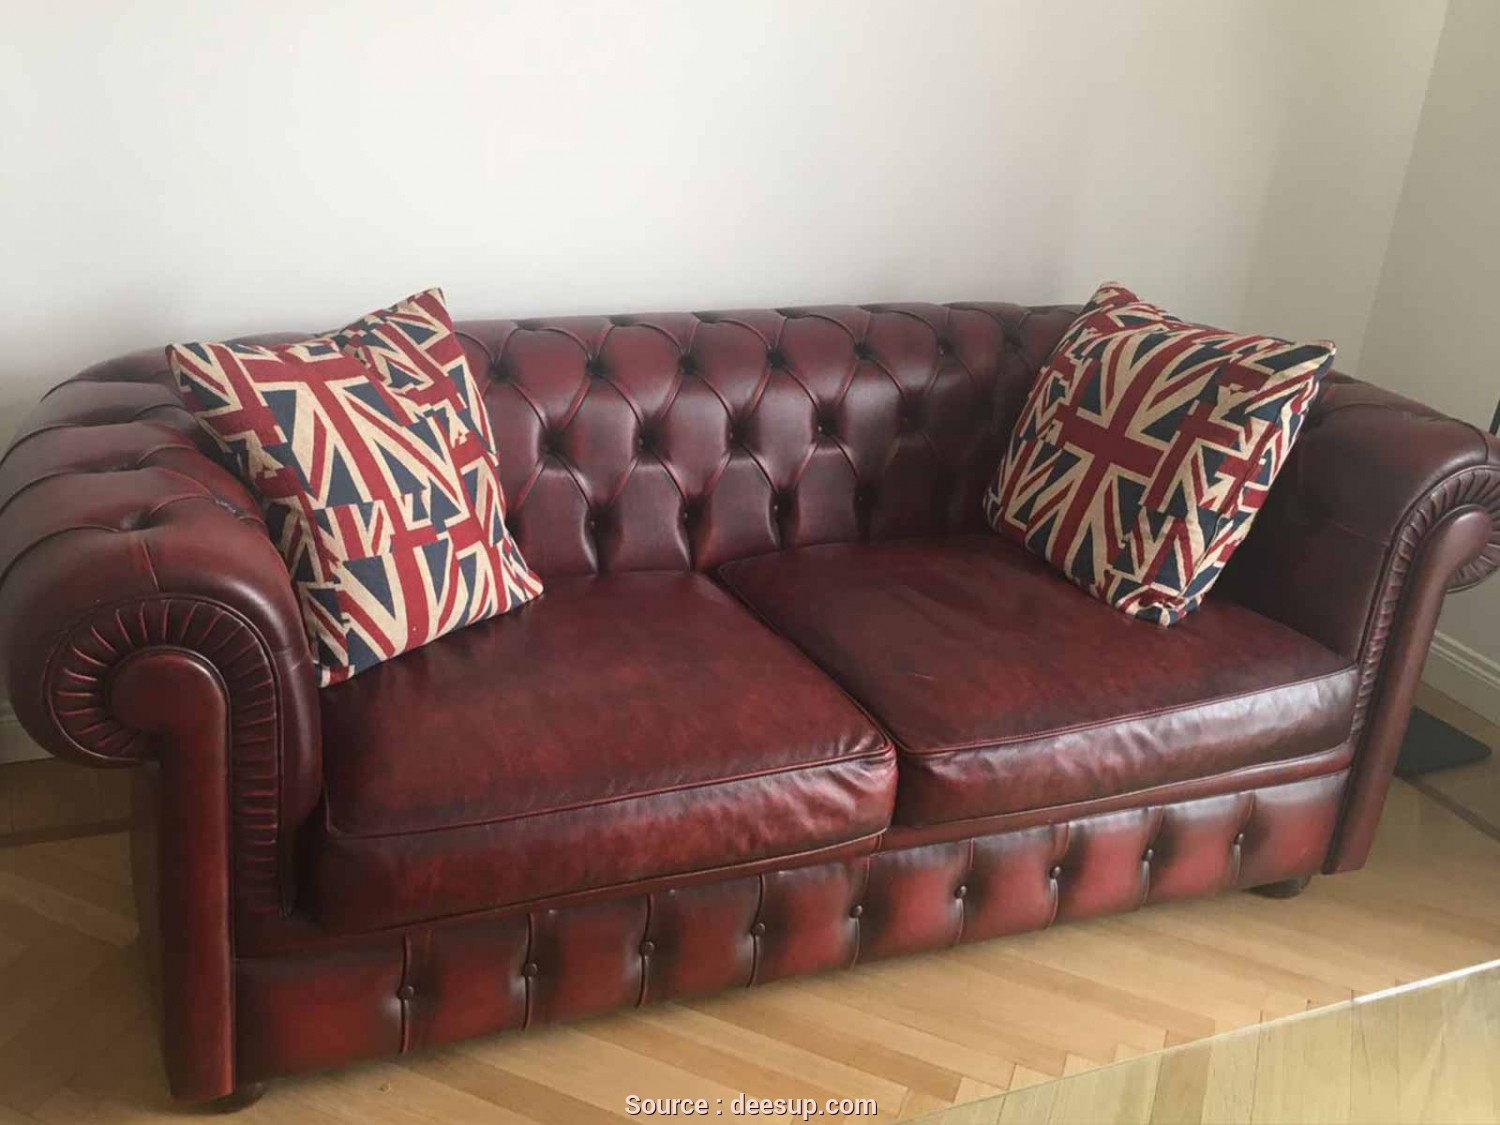 Divani Letto Santambrogio, Eccezionale Chesterfield_London_City-Santambrogio-Deesup; Chesterfield_London_City- Santambrogio-Deesup